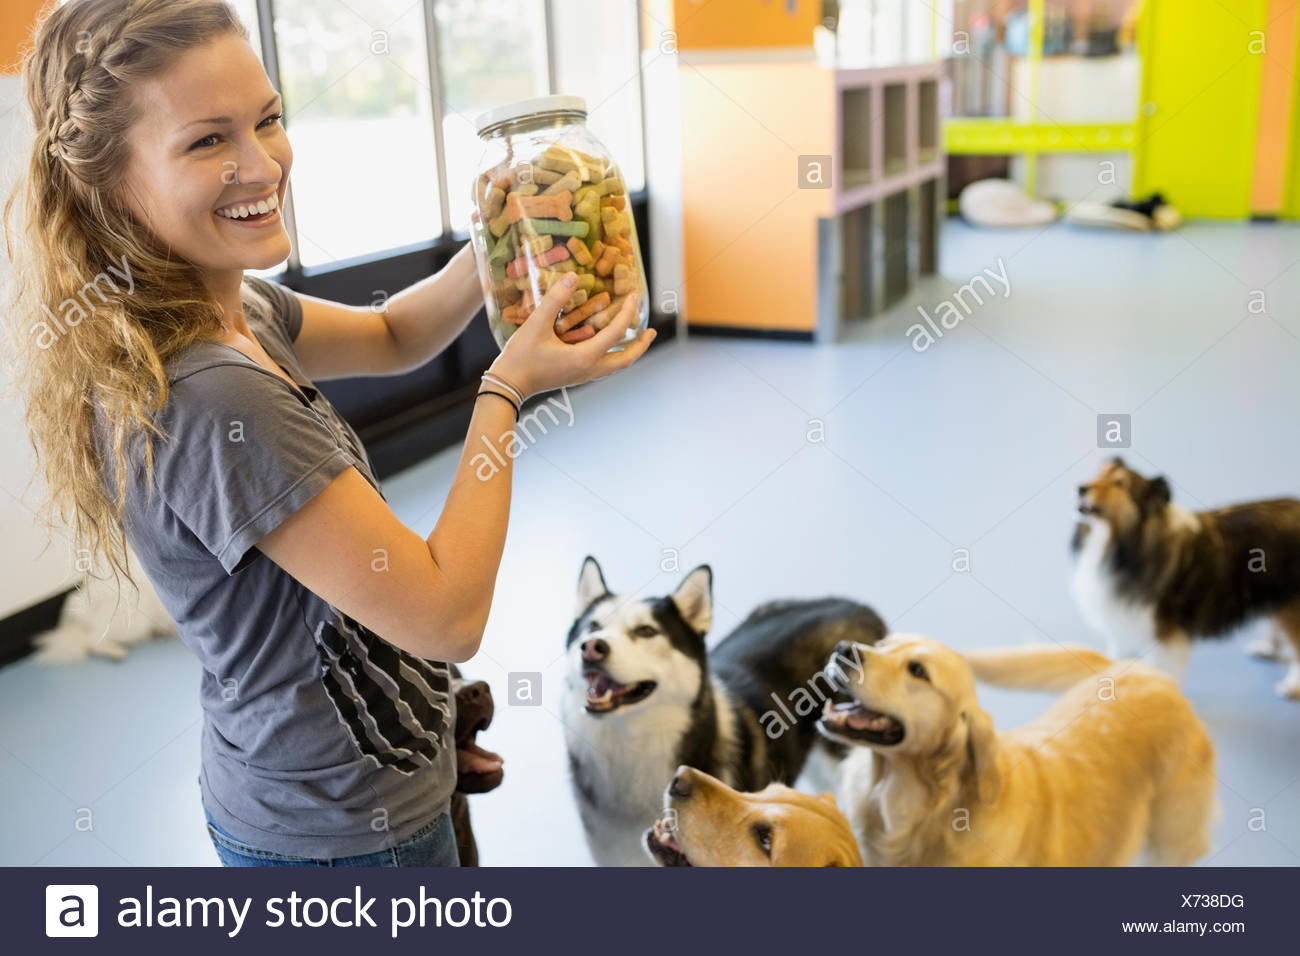 Dogs looking up at woman with biscuit jar - Stock Image